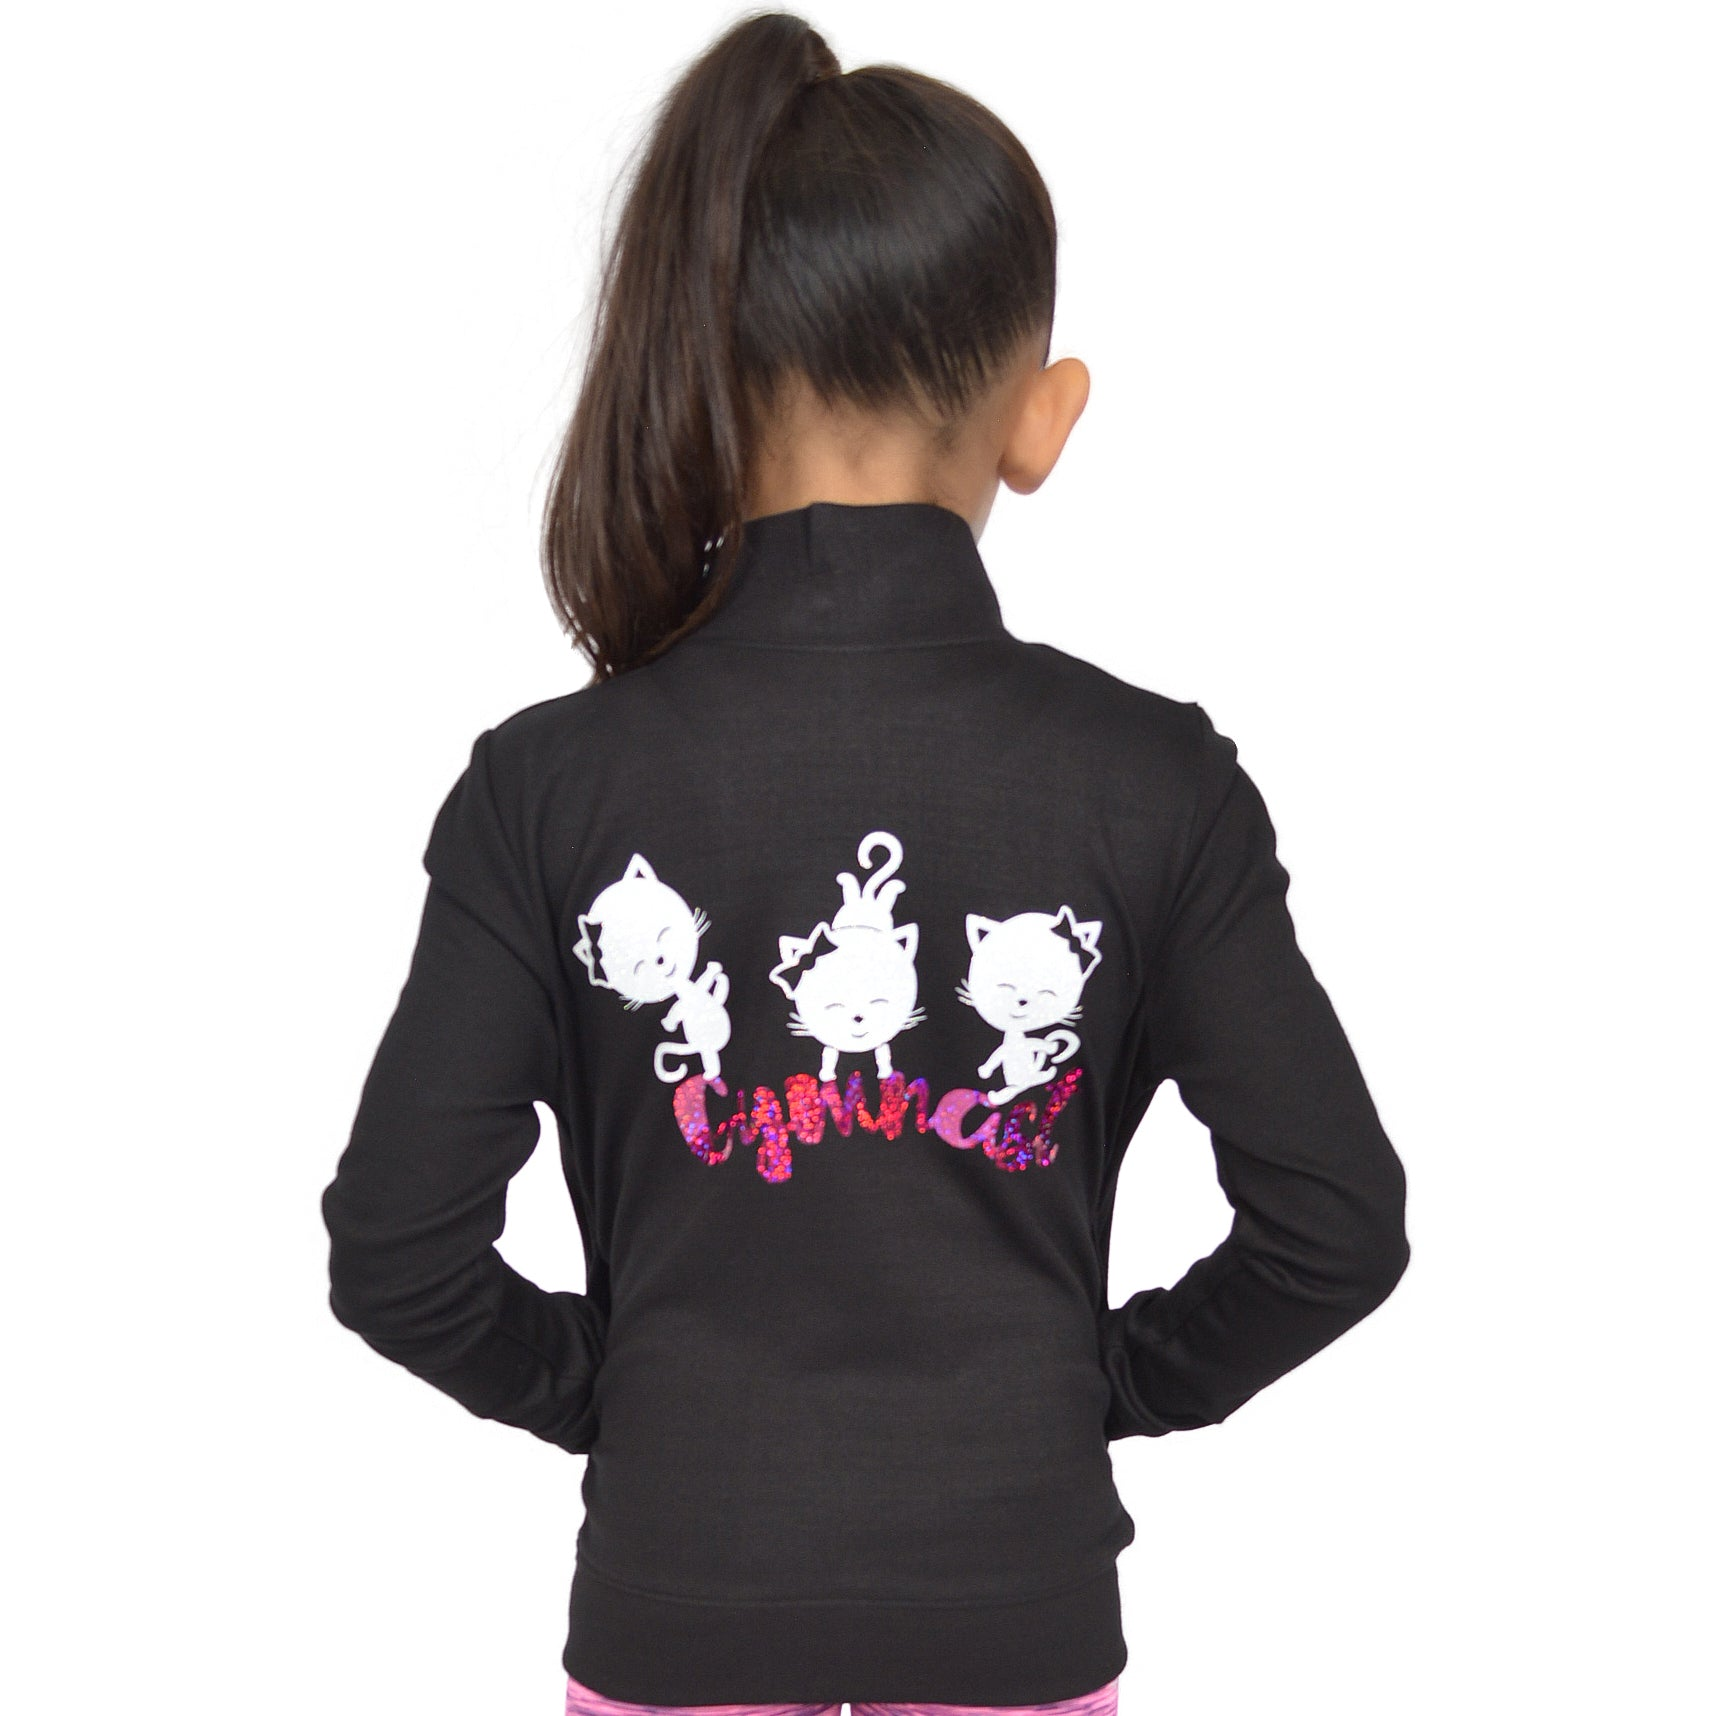 Girl's Glitter Cool Cats Gymnastics Hologram Print Warmup Jacket